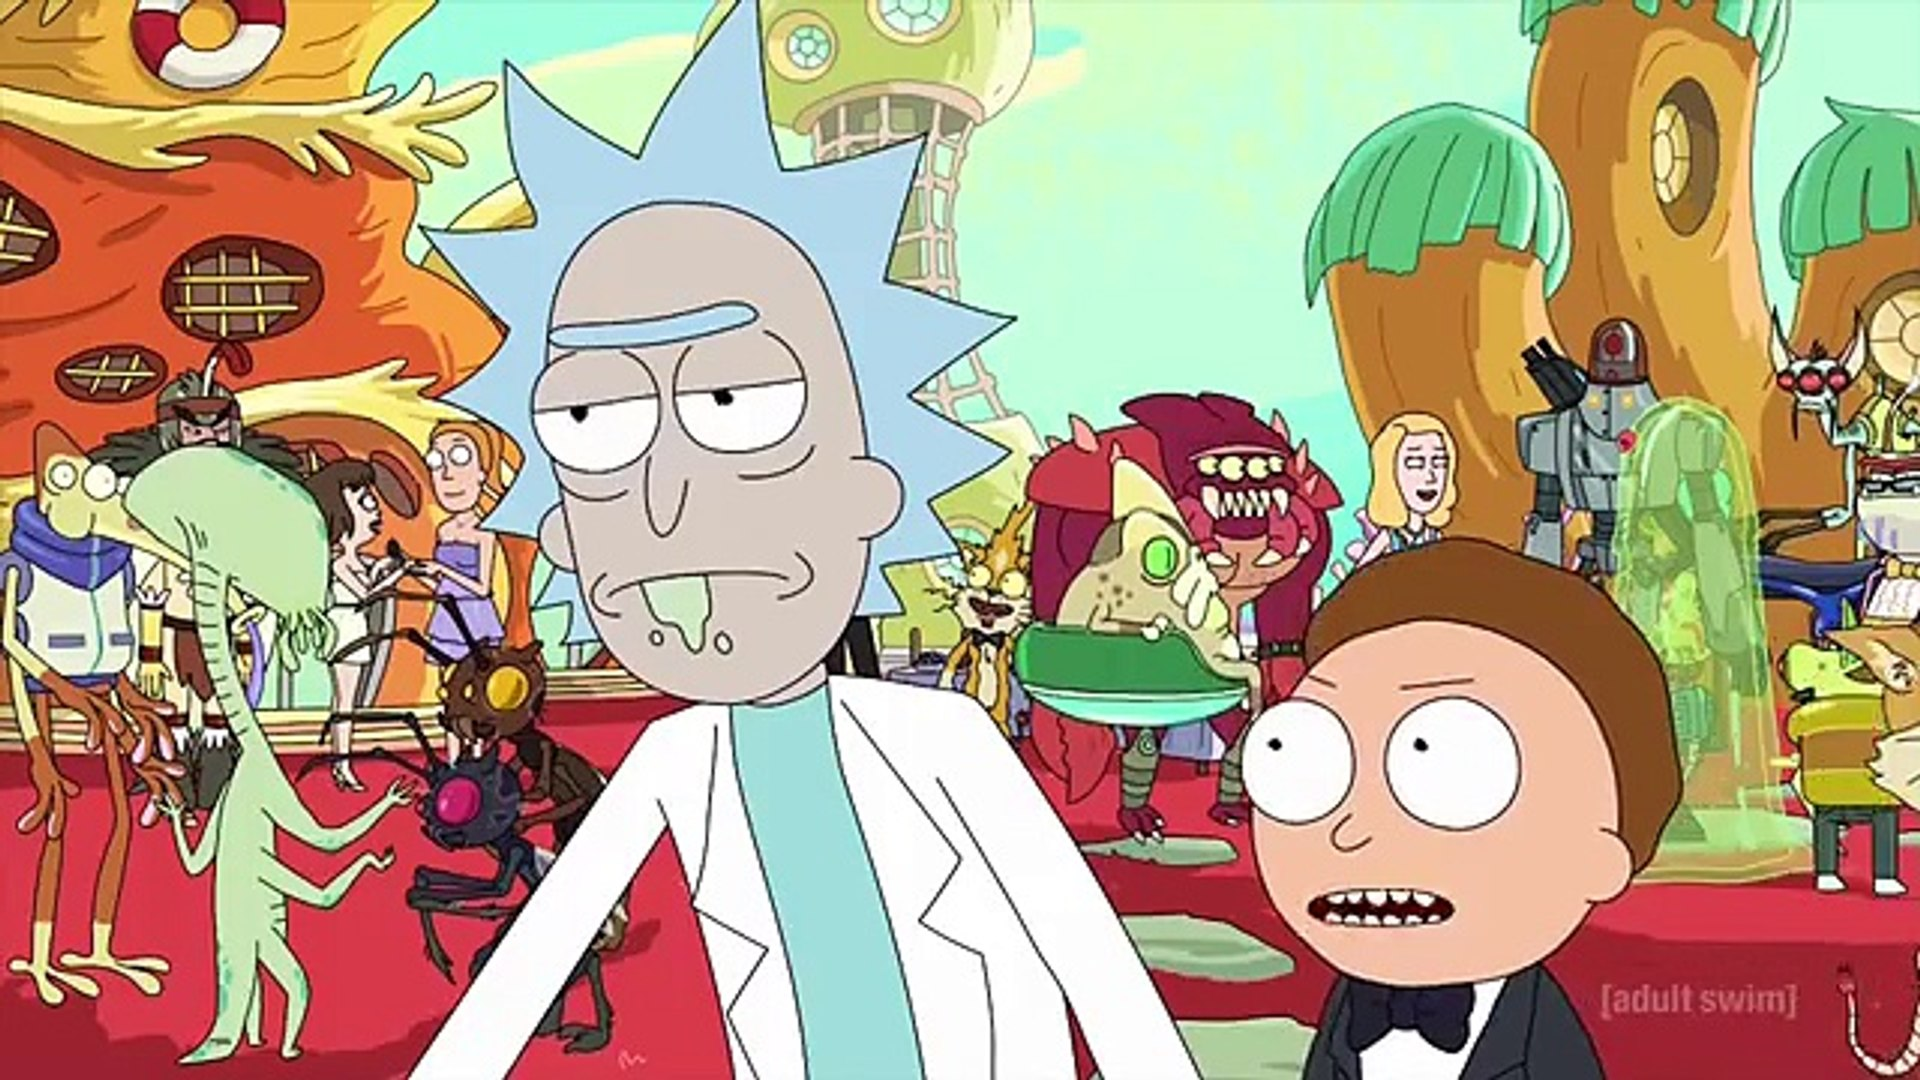 Rick And Morty Season 3 Episode 9 Rick S Untold History Theory Video Dailymotion He spends most of his time involving his young grandson morty in dangerous, outlandish adventures throughout space and alternate universes. rick and morty season 3 episode 9 rick s untold history theory